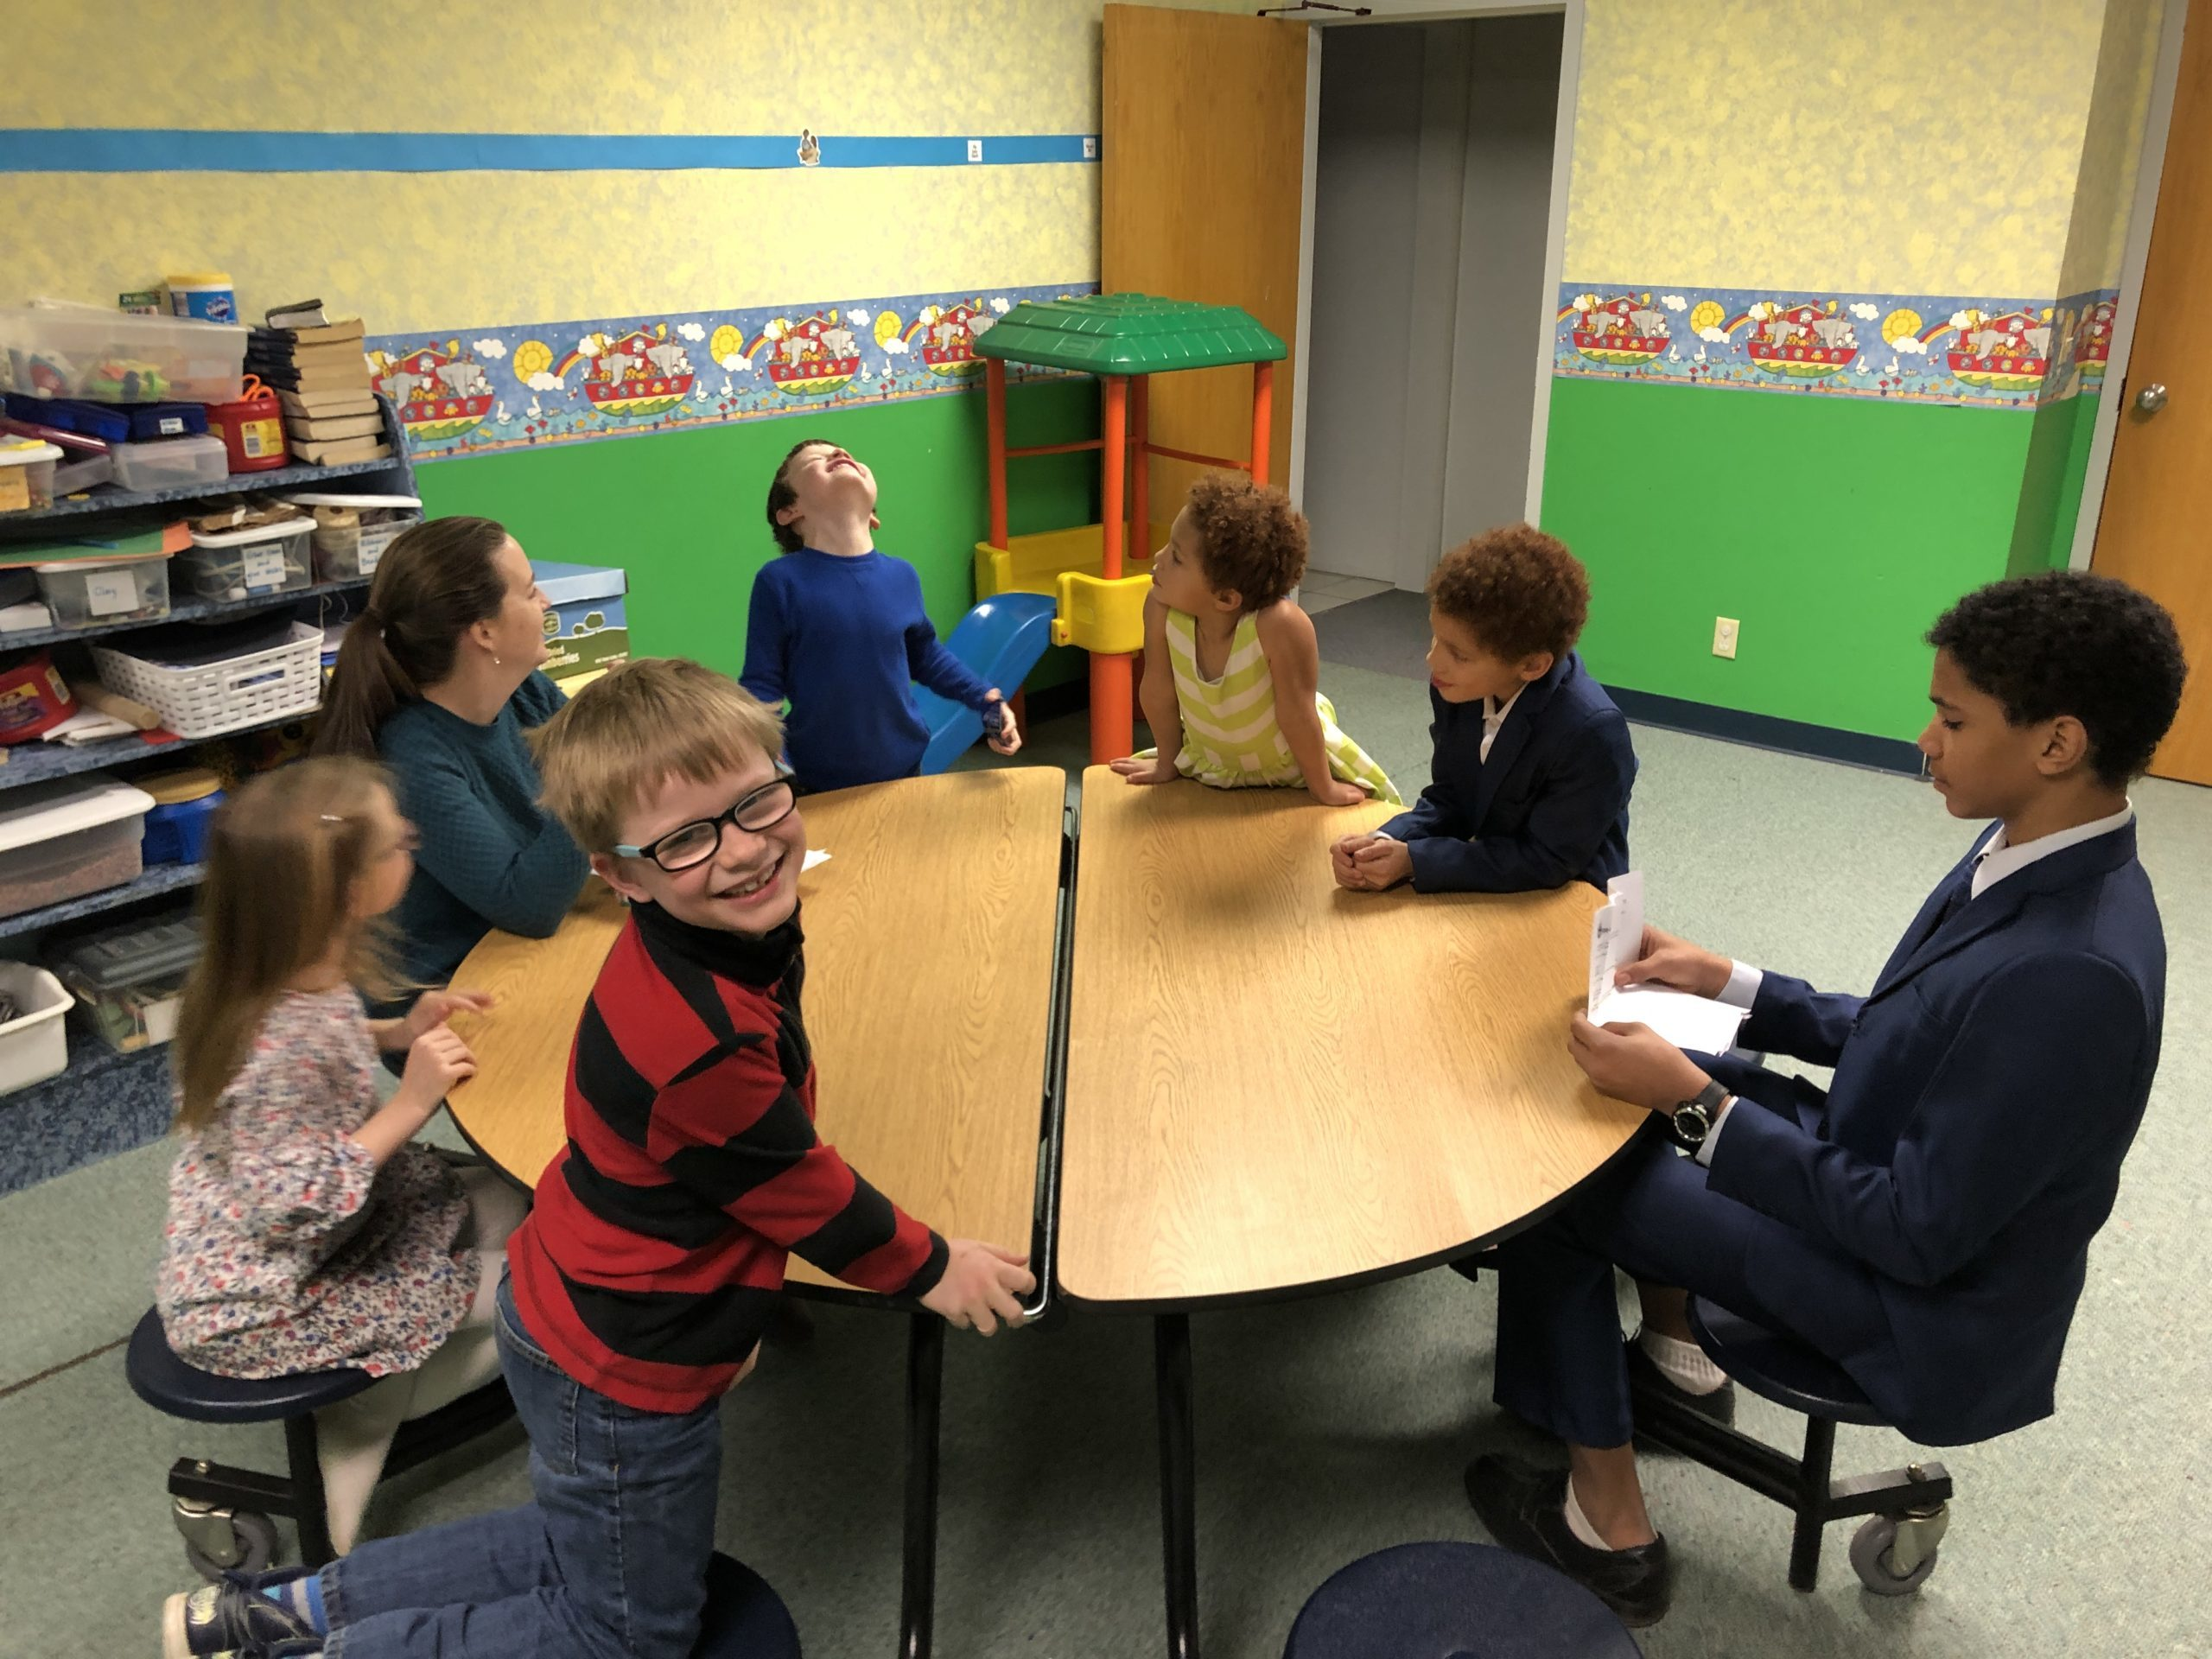 Kids in Sunday School class at church in Muscatine, IA